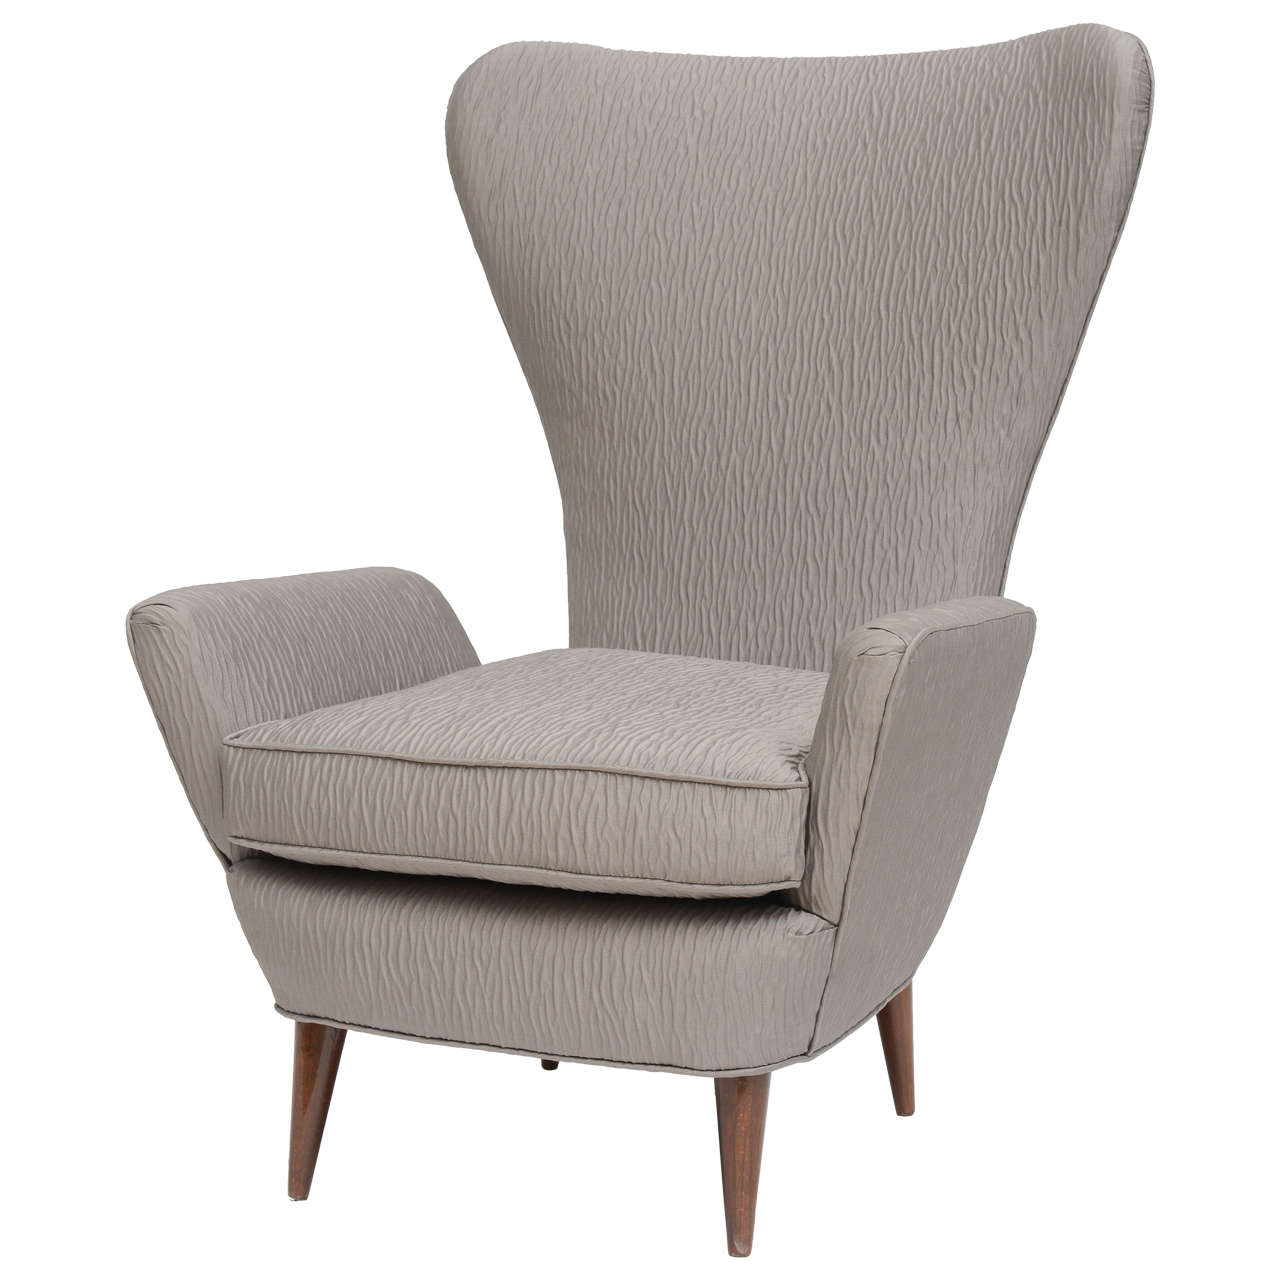 Exceptional Italian Modern High Back Armchair, Italy For Sale